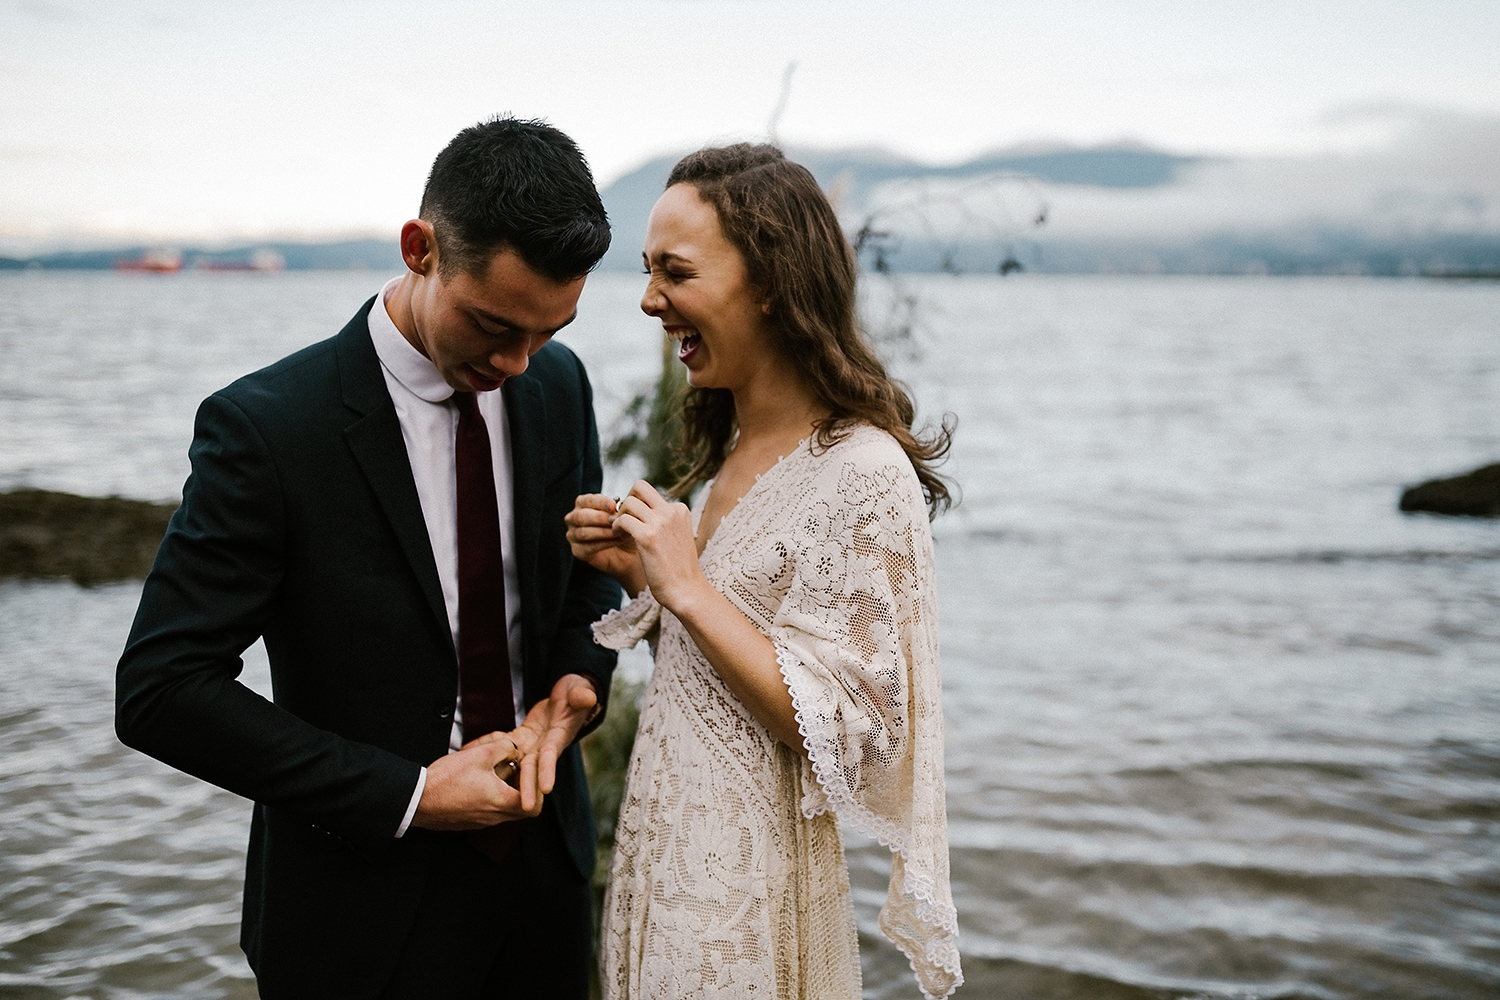 Morning Elopement on the Ocean in Vancouver